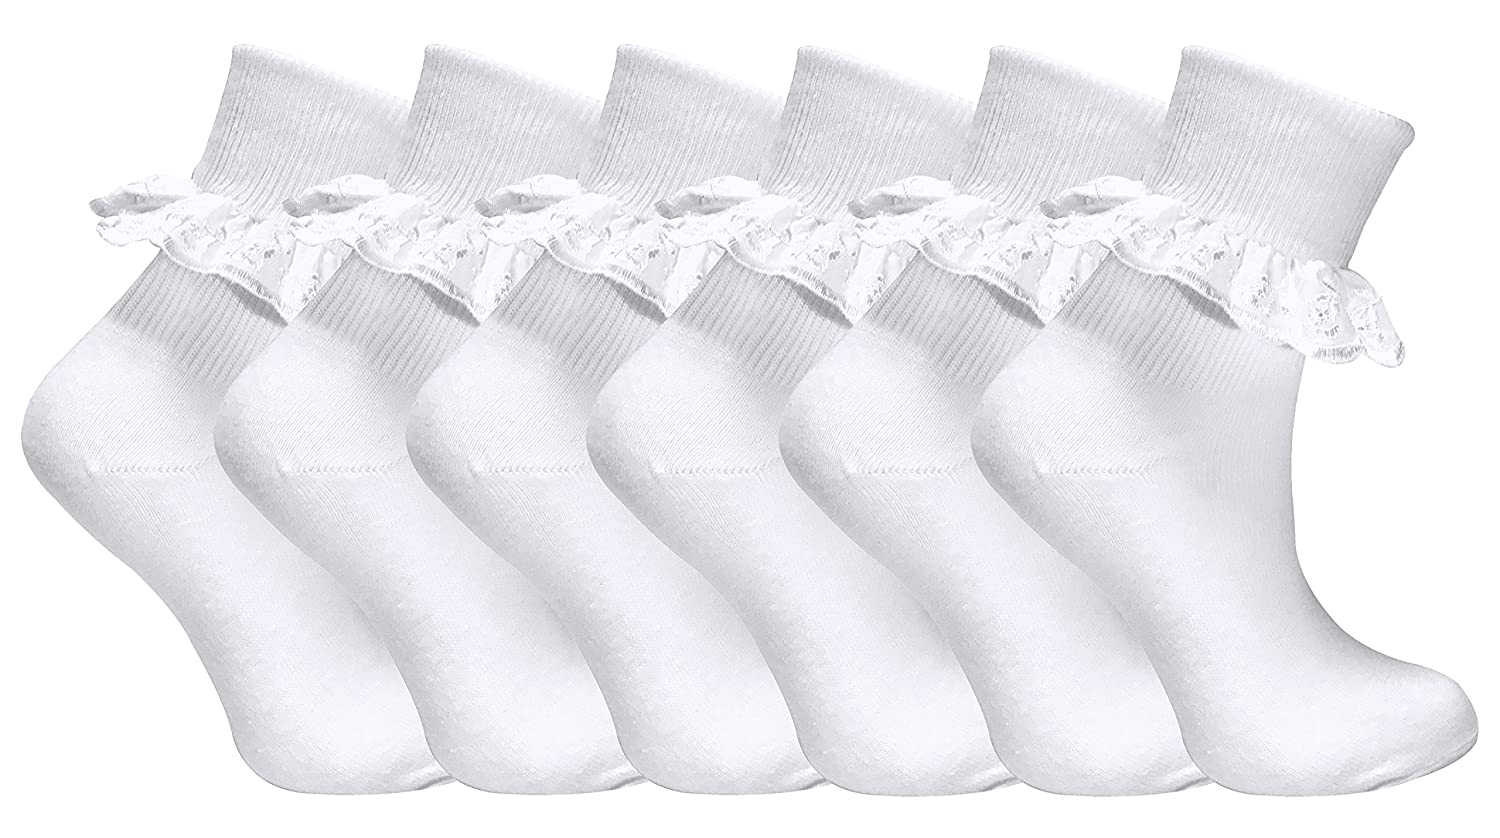 6 Pairs of Girls White Fancy lace Cotton ankle socks All sizes